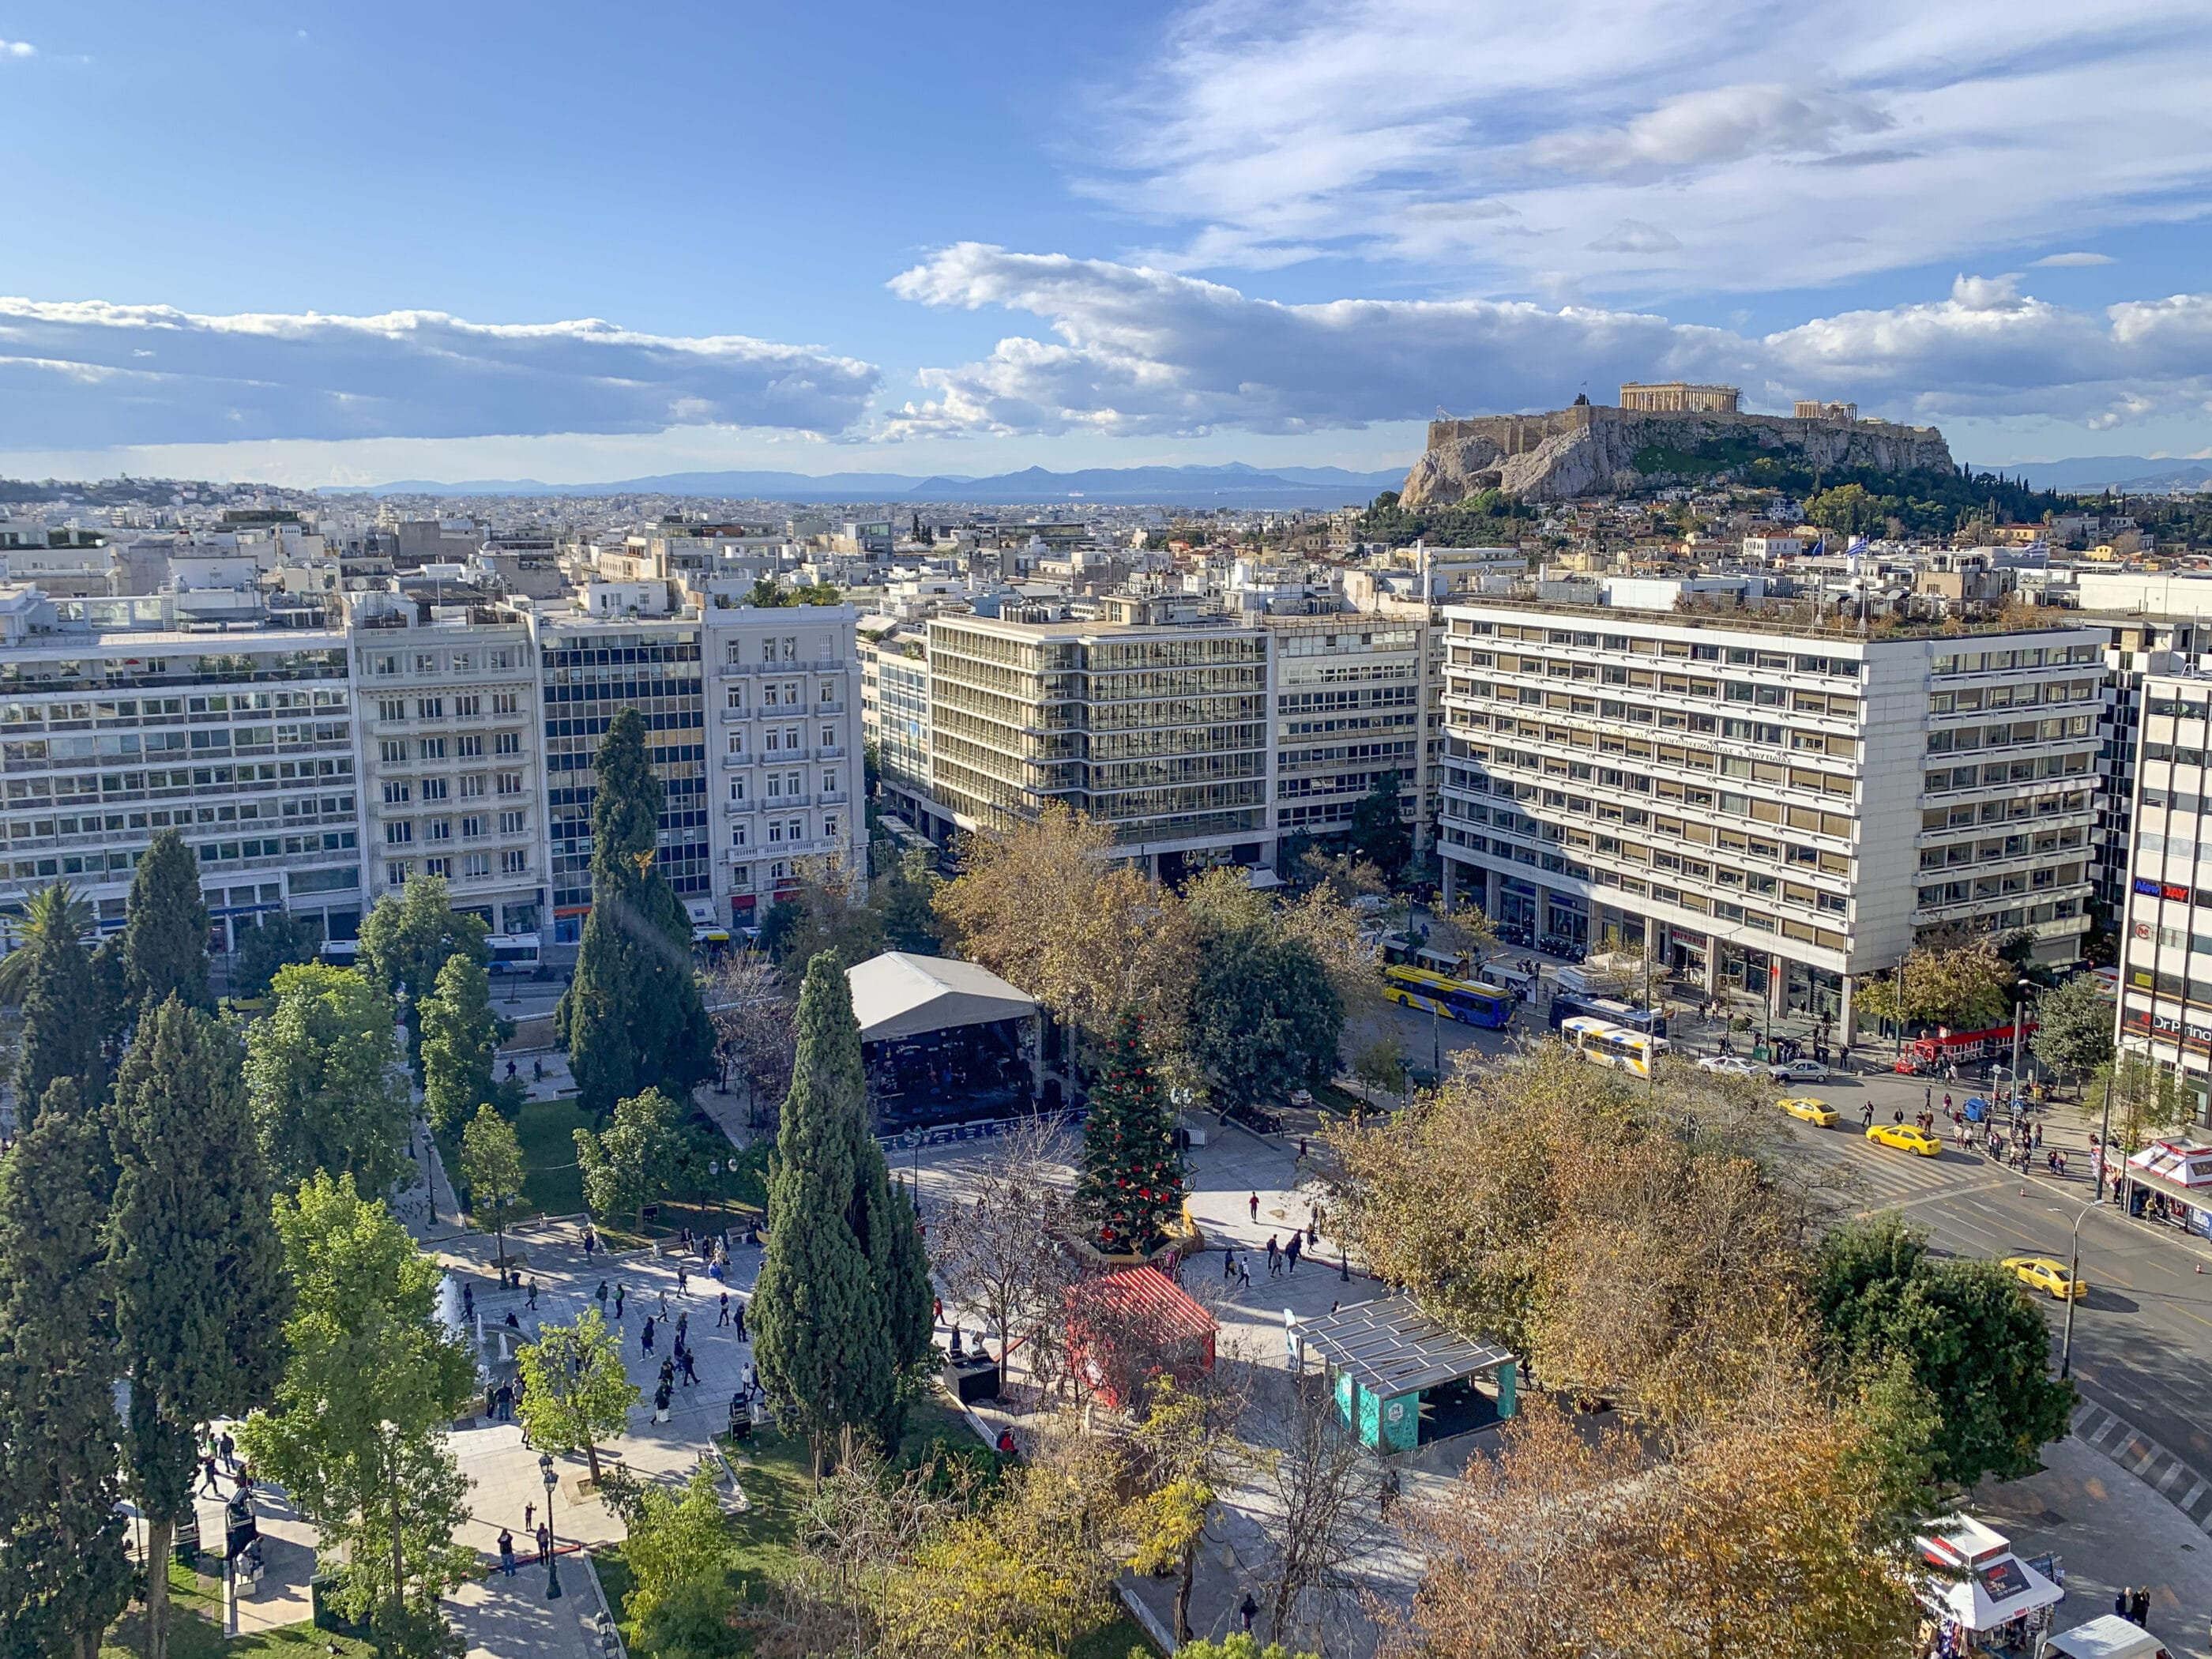 View over Syntagma Square from the GB Roof Garden Restaurant over to the Acropolis.